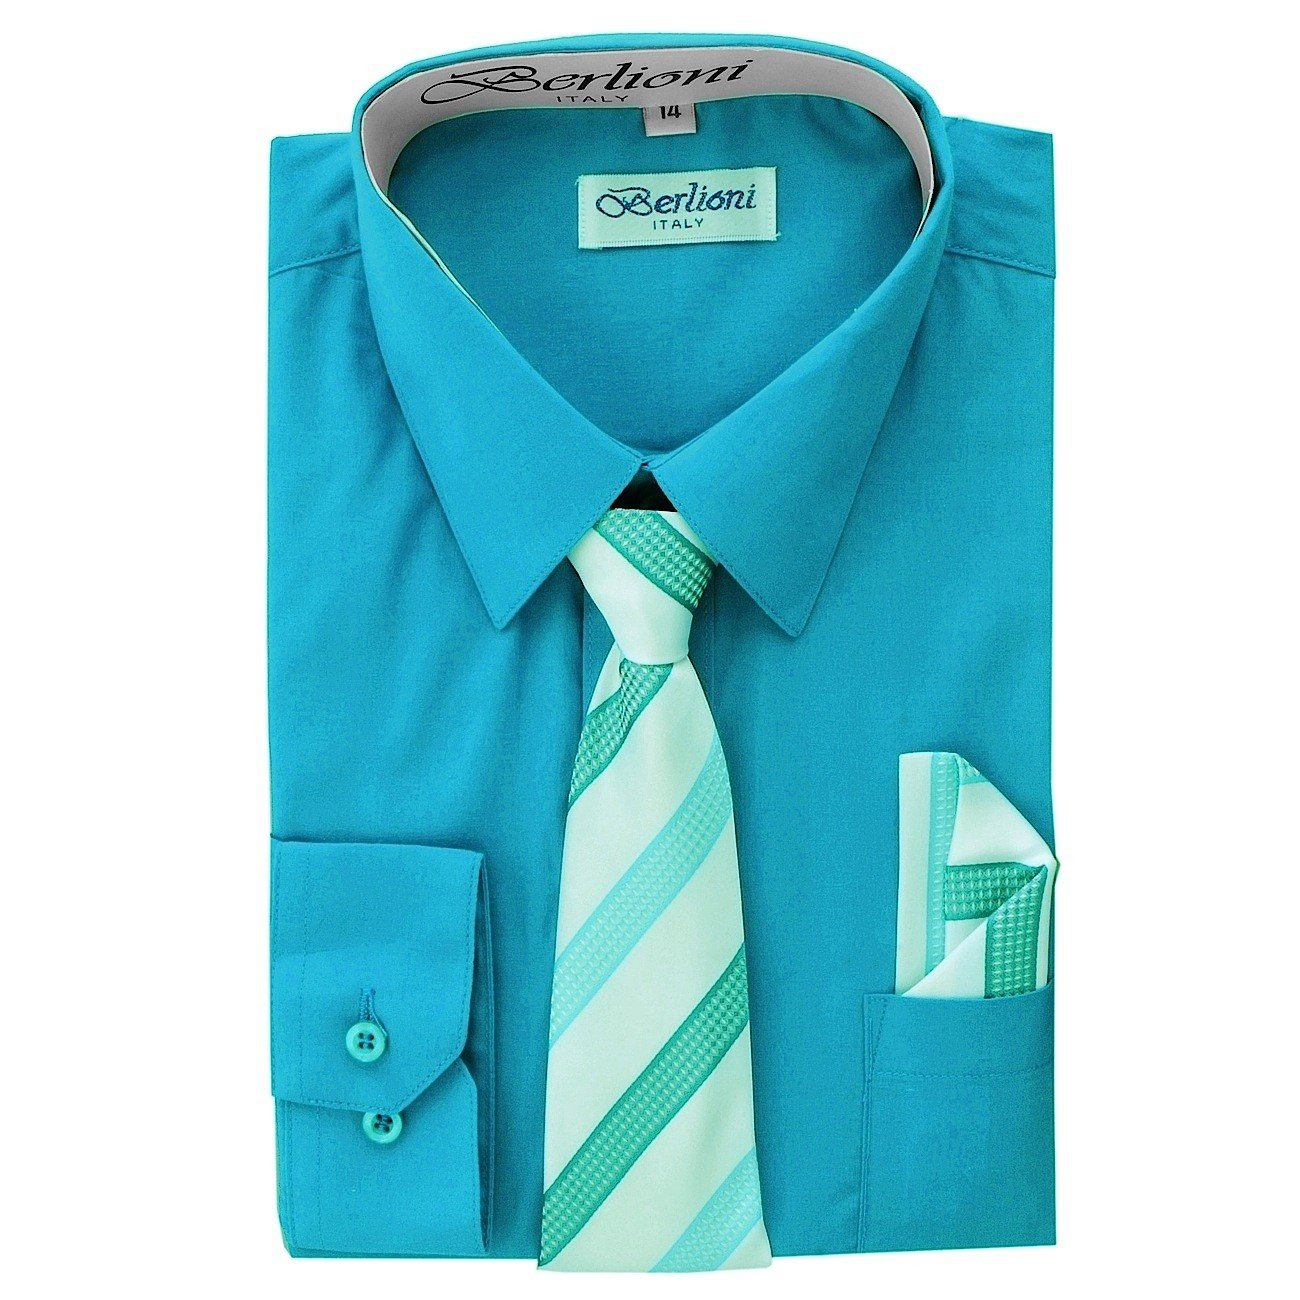 Boy's Dress Shirt, Necktie, and Hanky Set - Turquoise, Size 16 Boy's Dress Shirt N-707